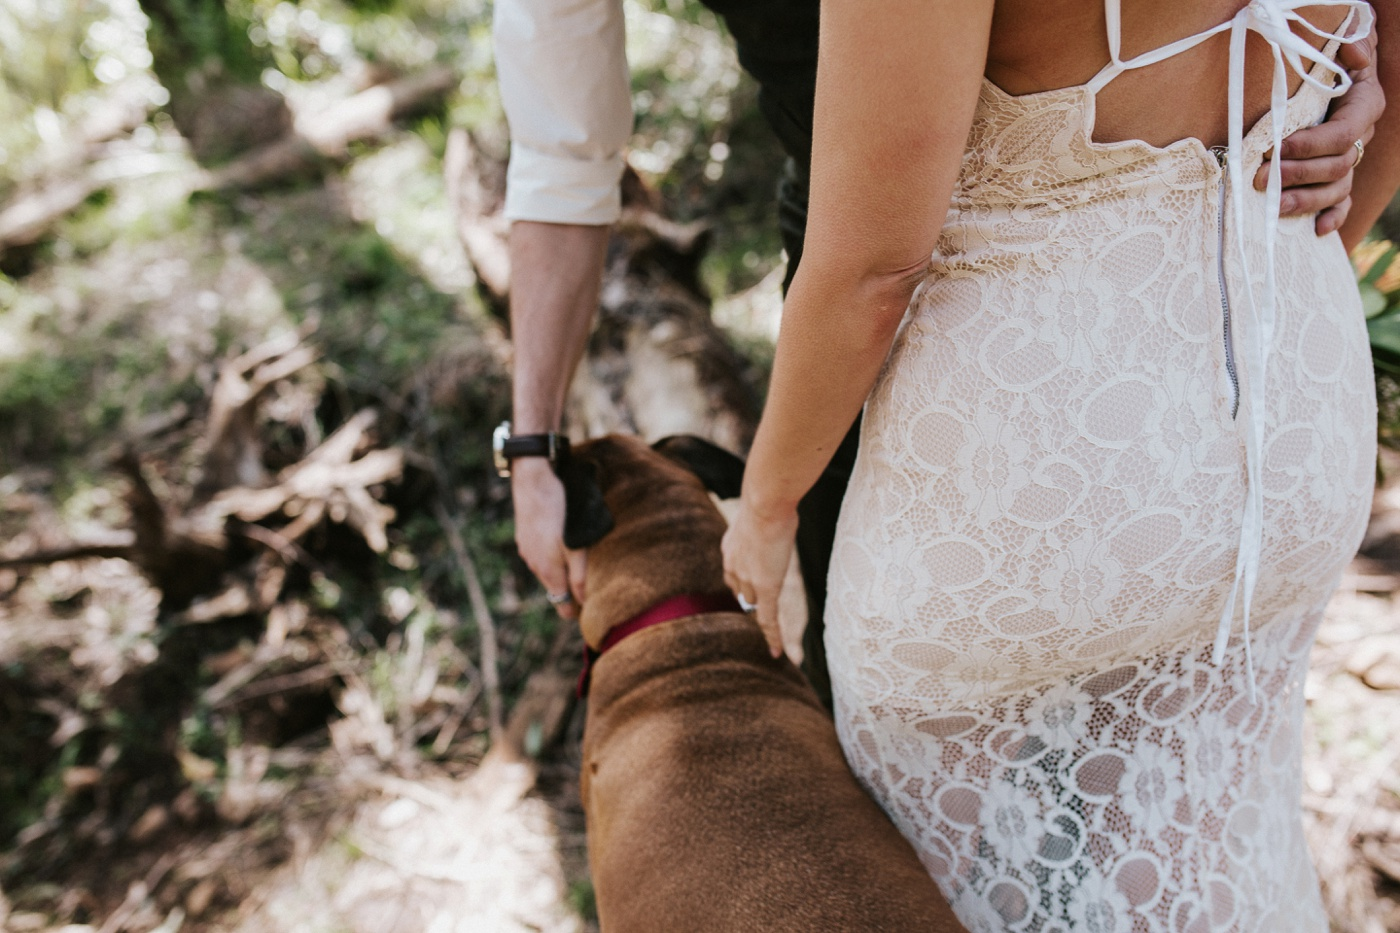 monicajames_dandenongs-dog-fun-relaxed-engagement-shoot_melbourne-fun-candid-wedding-photography_8